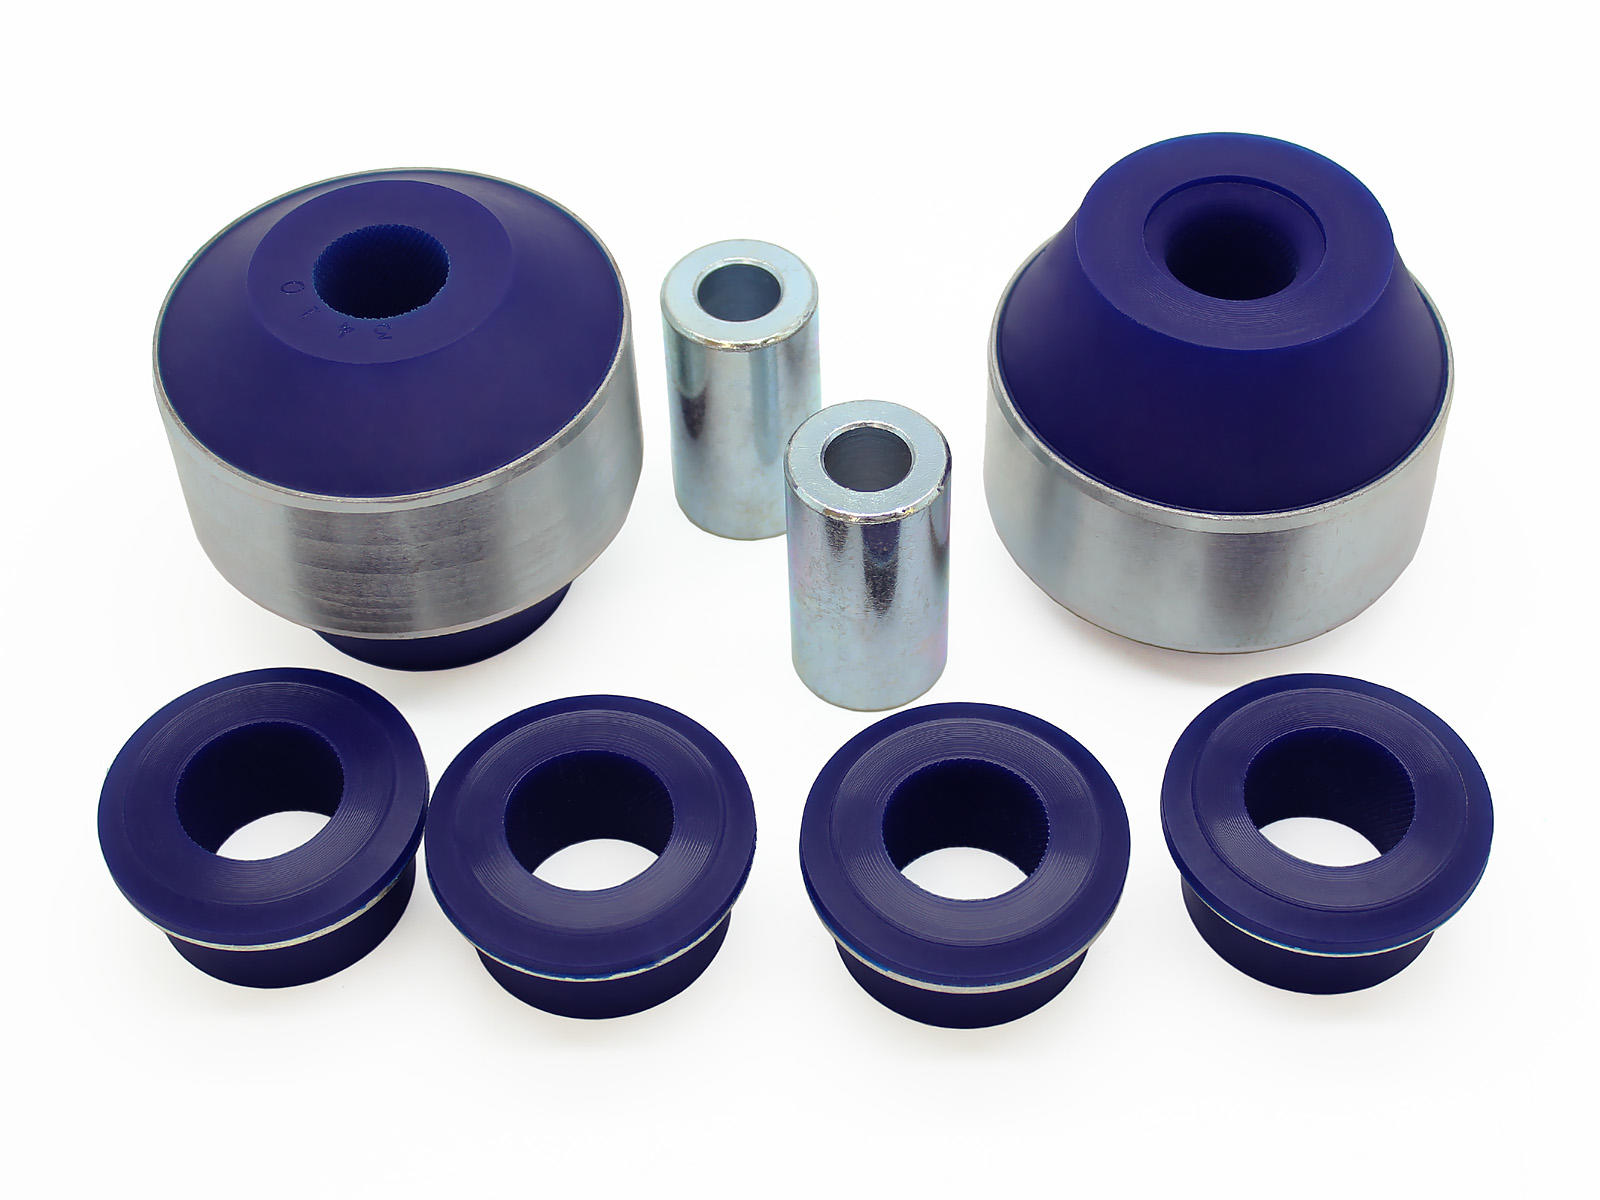 Superpro Suspension Parts And Poly Bushings For Nissan Maxima J31 Wiring Diagram Cefiro A32 2003 2008